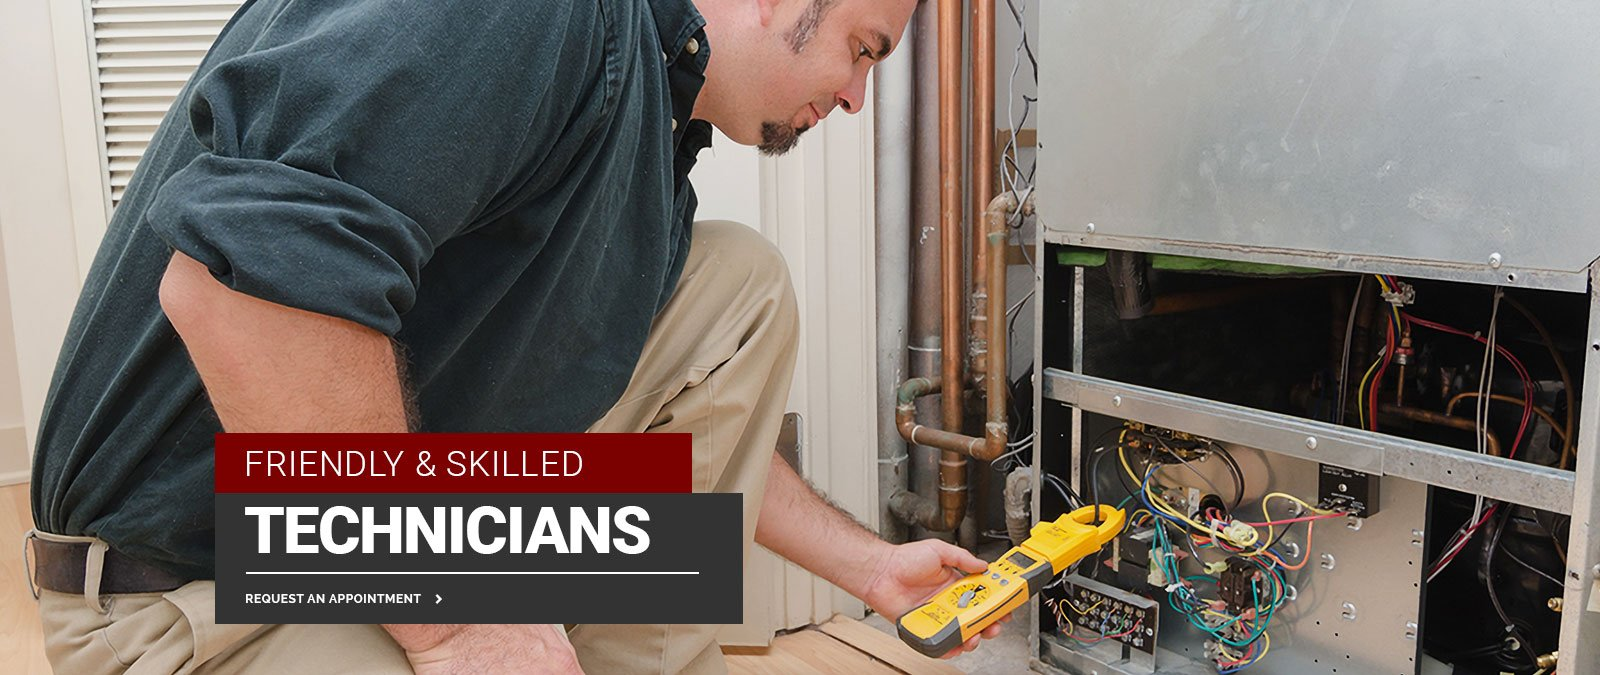 Friendly and Skilled Technicians